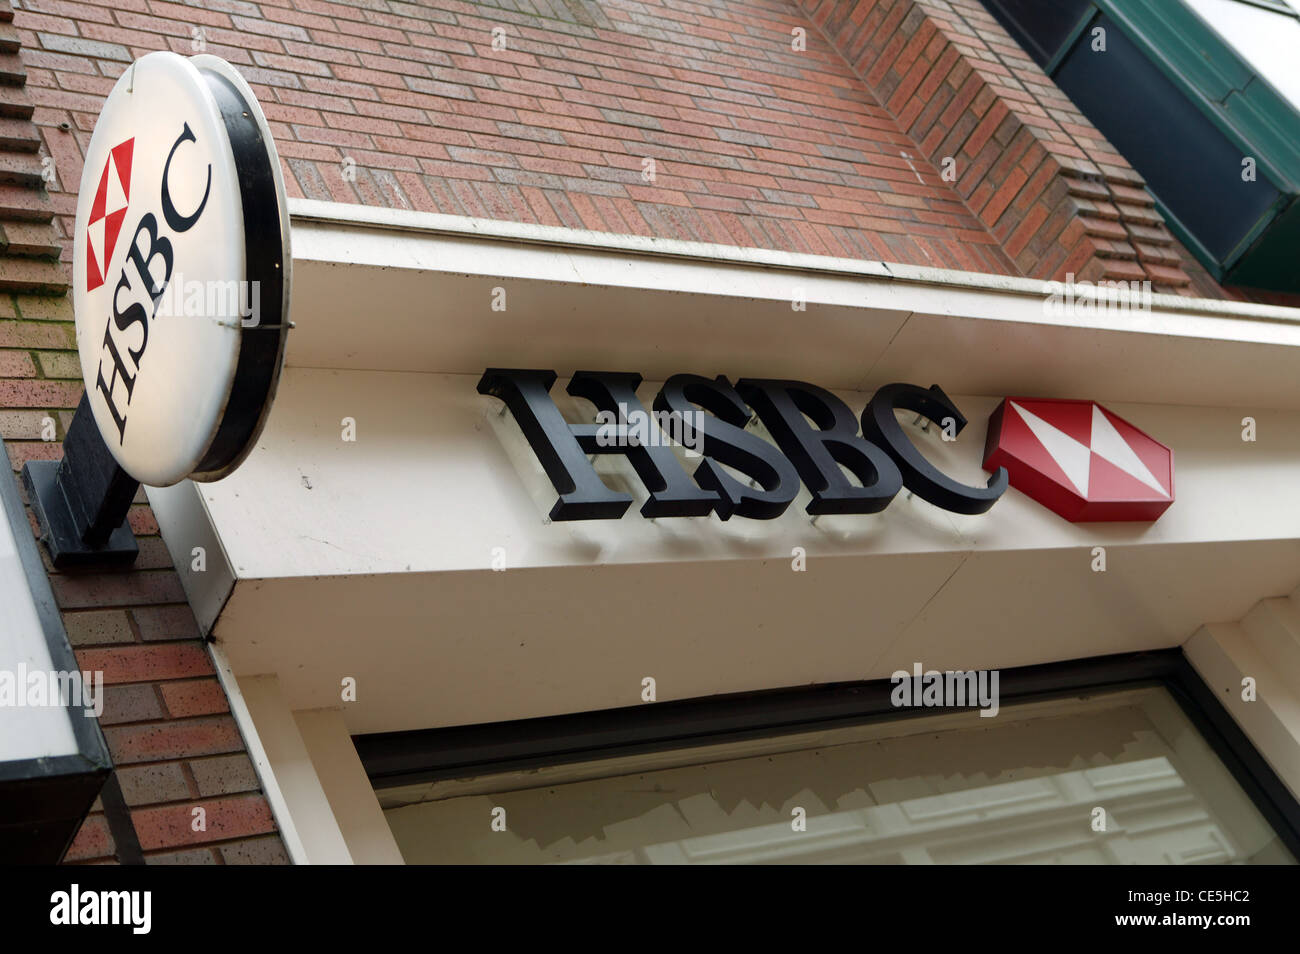 Circular HSBC Sign,  Royal Avenue, Red , White corporate logo, HSBC Lettering. Cream frontage, red brick wall - Stock Image